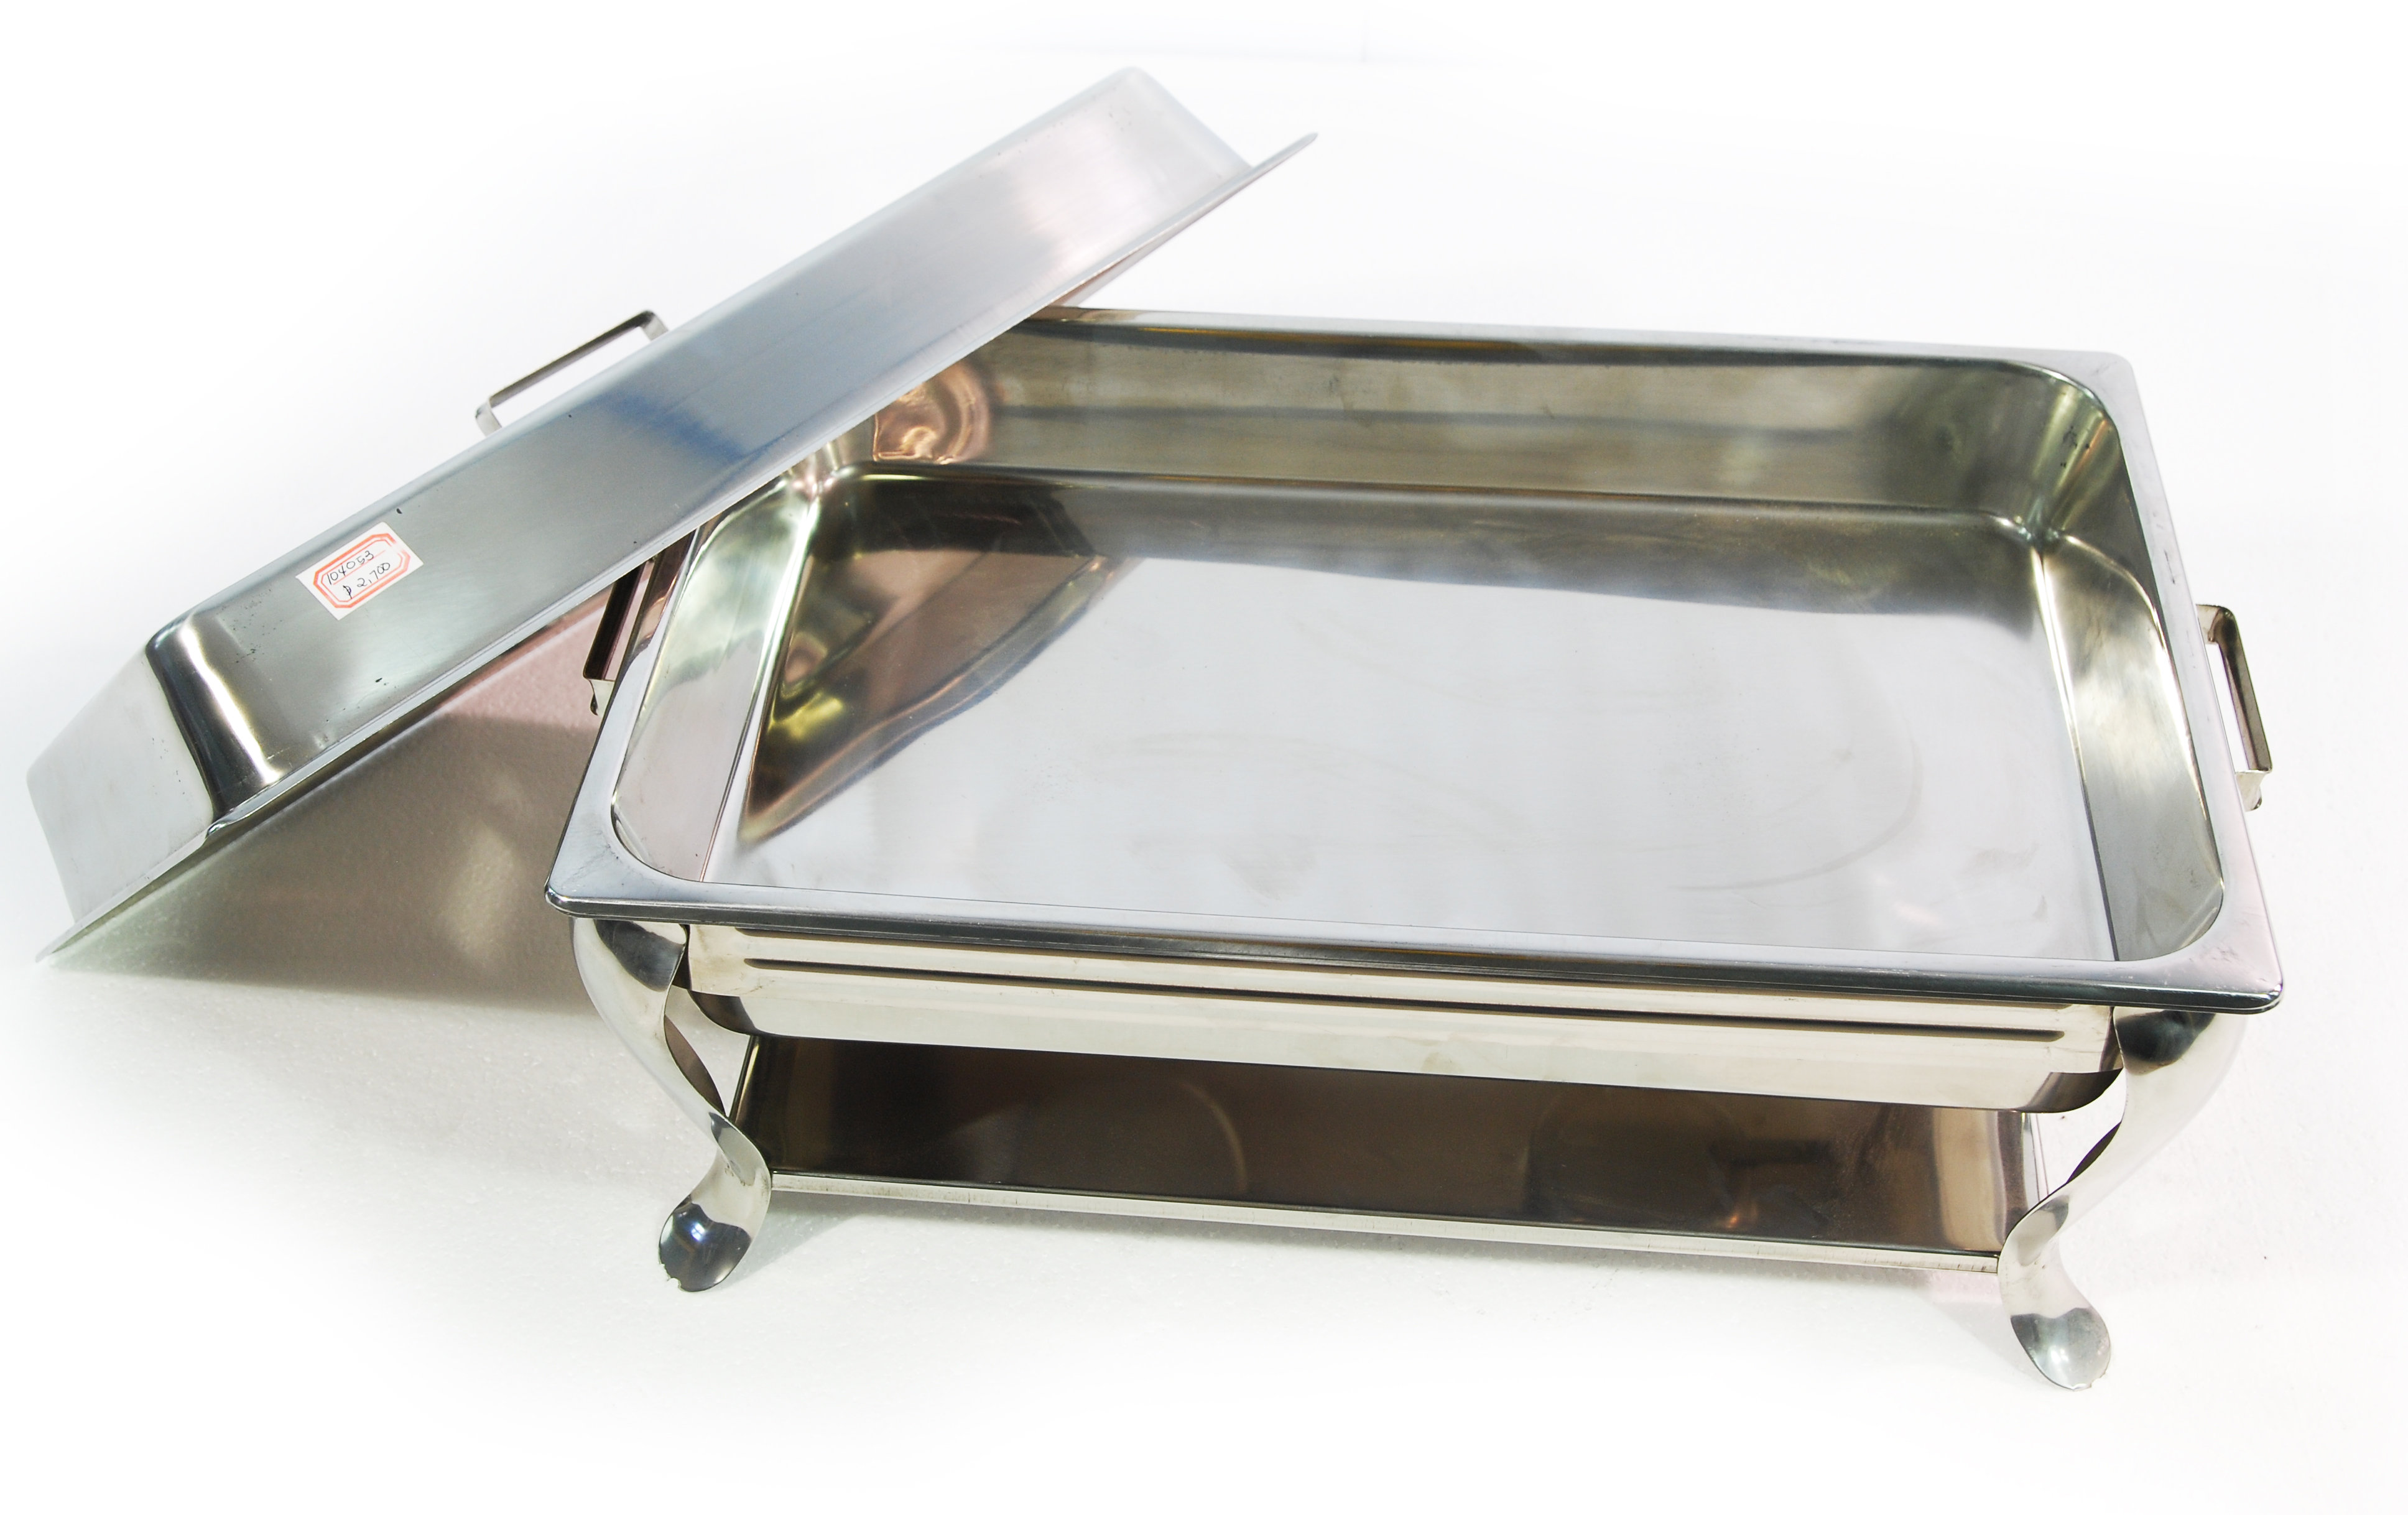 MK Kitchen Equipment and Supplies - Chafing dish full size local